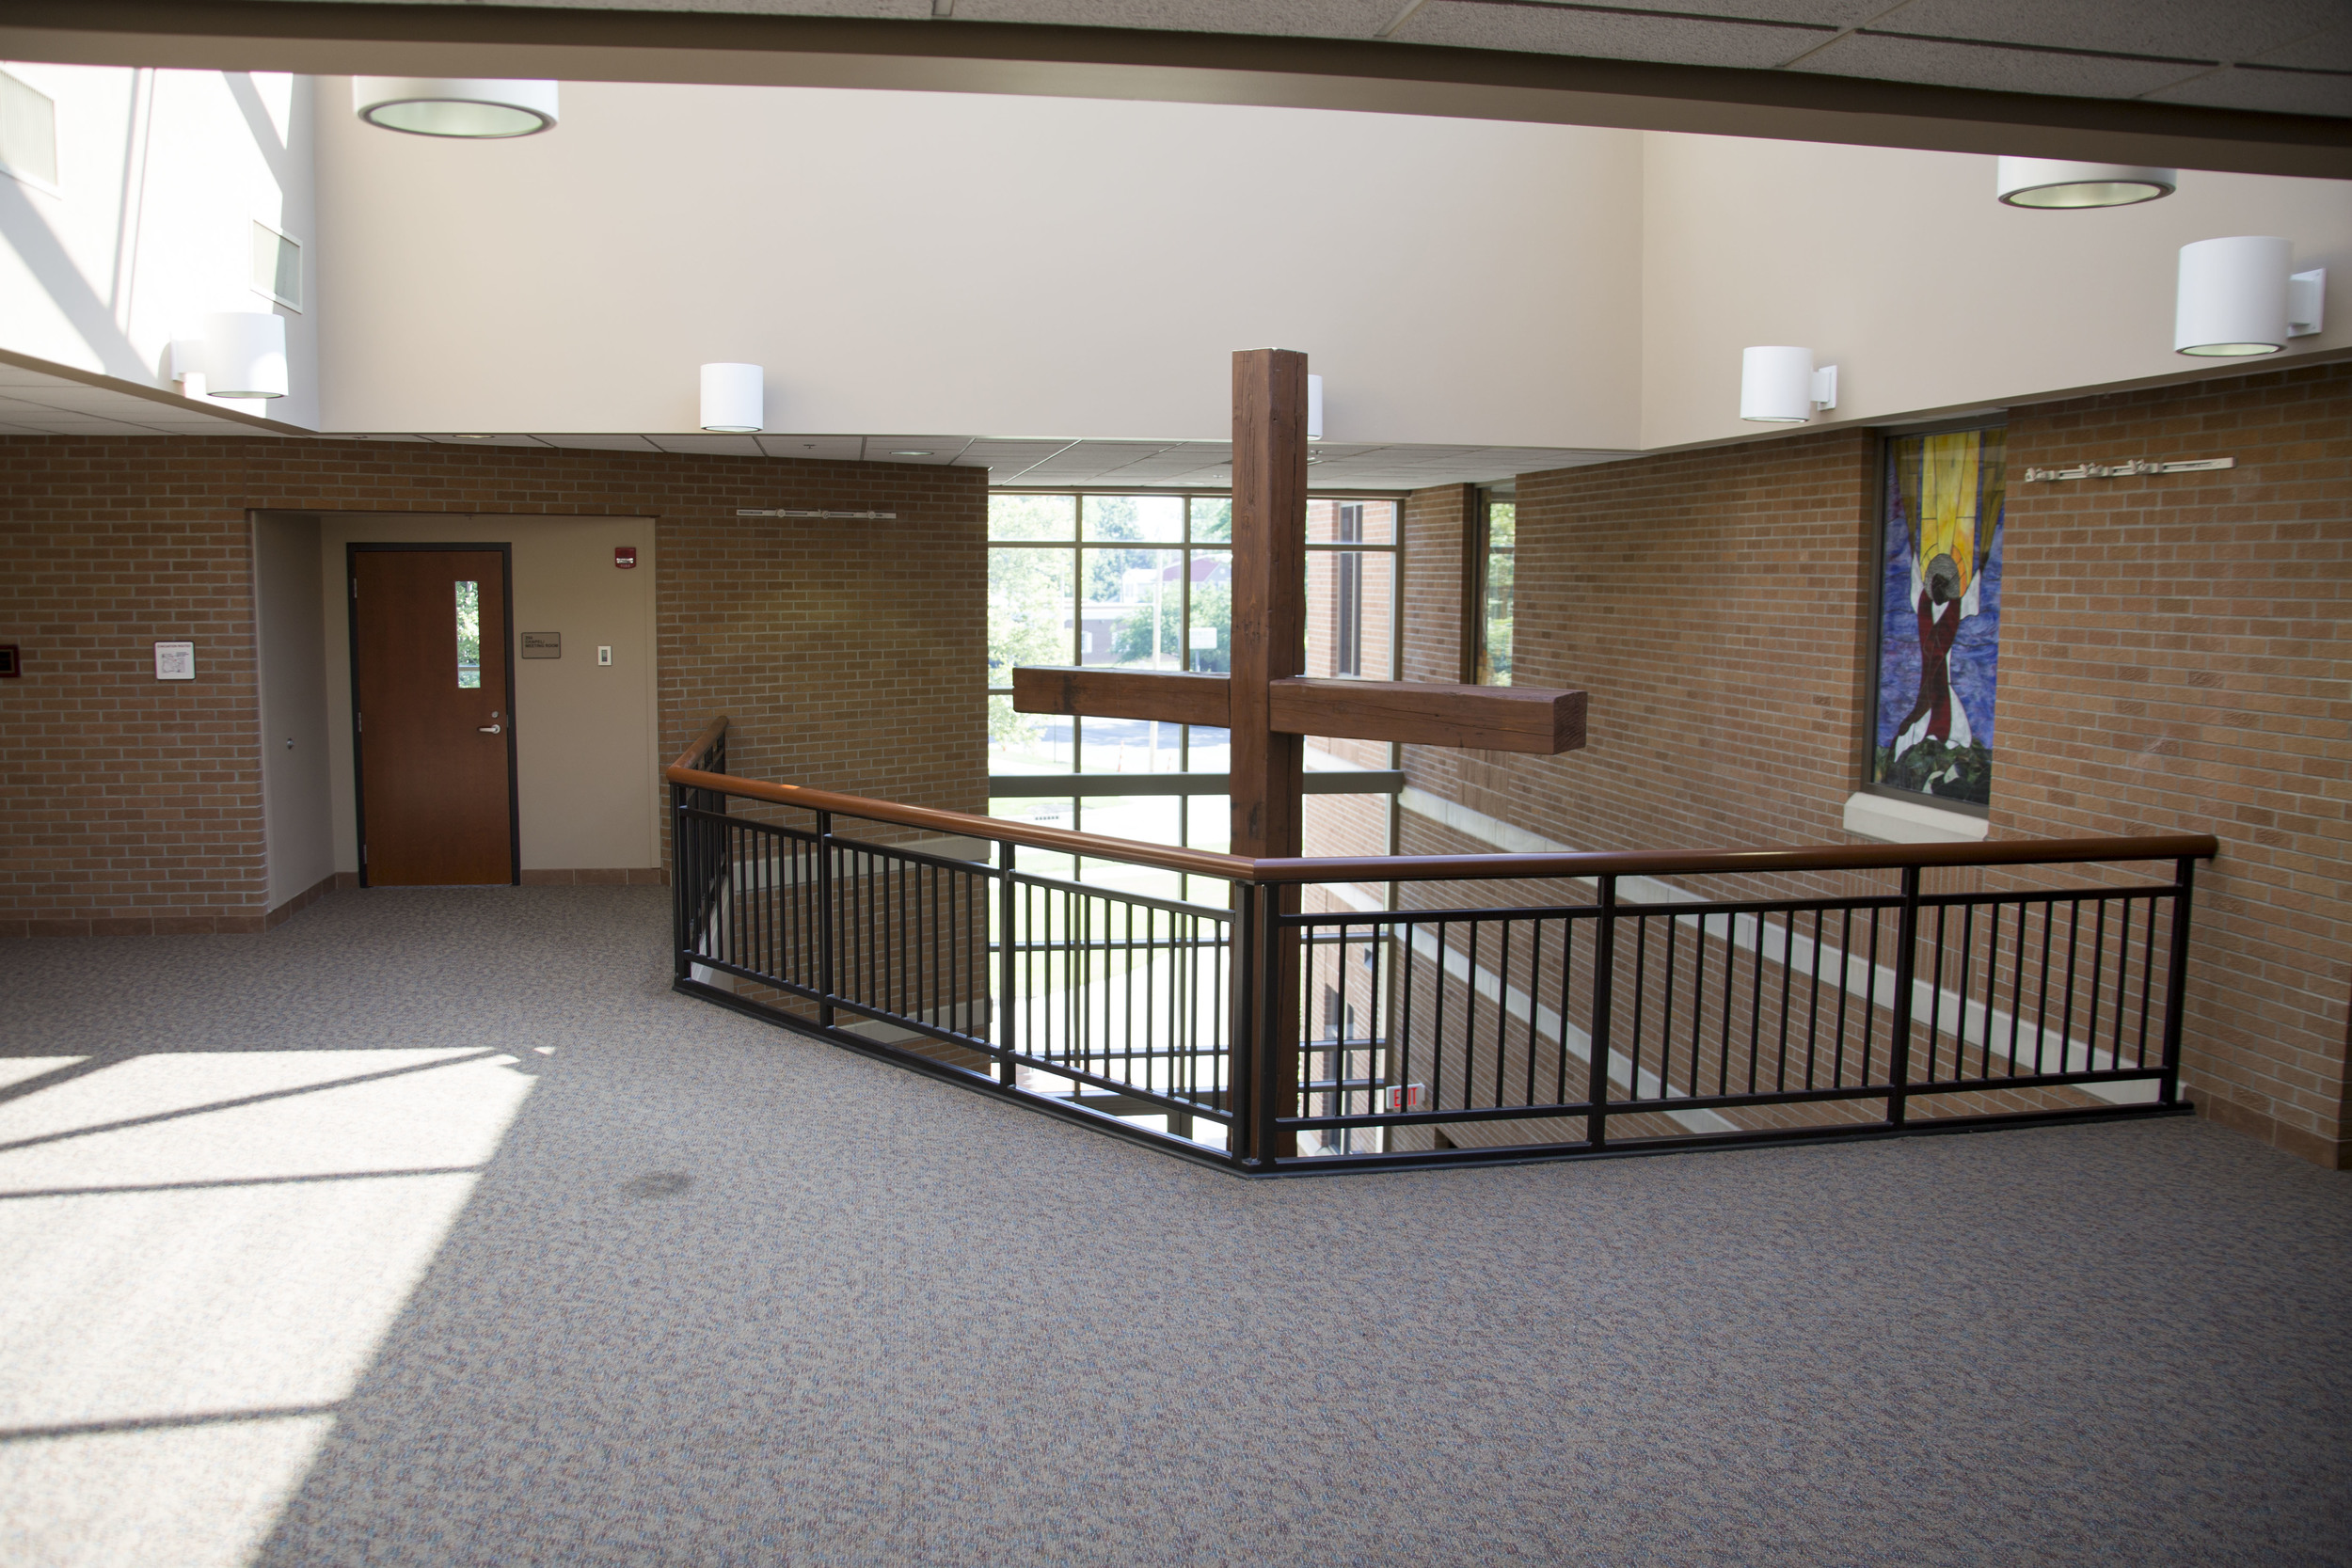 www.rcmarchitects.com - winebrenner theological seminary (5)